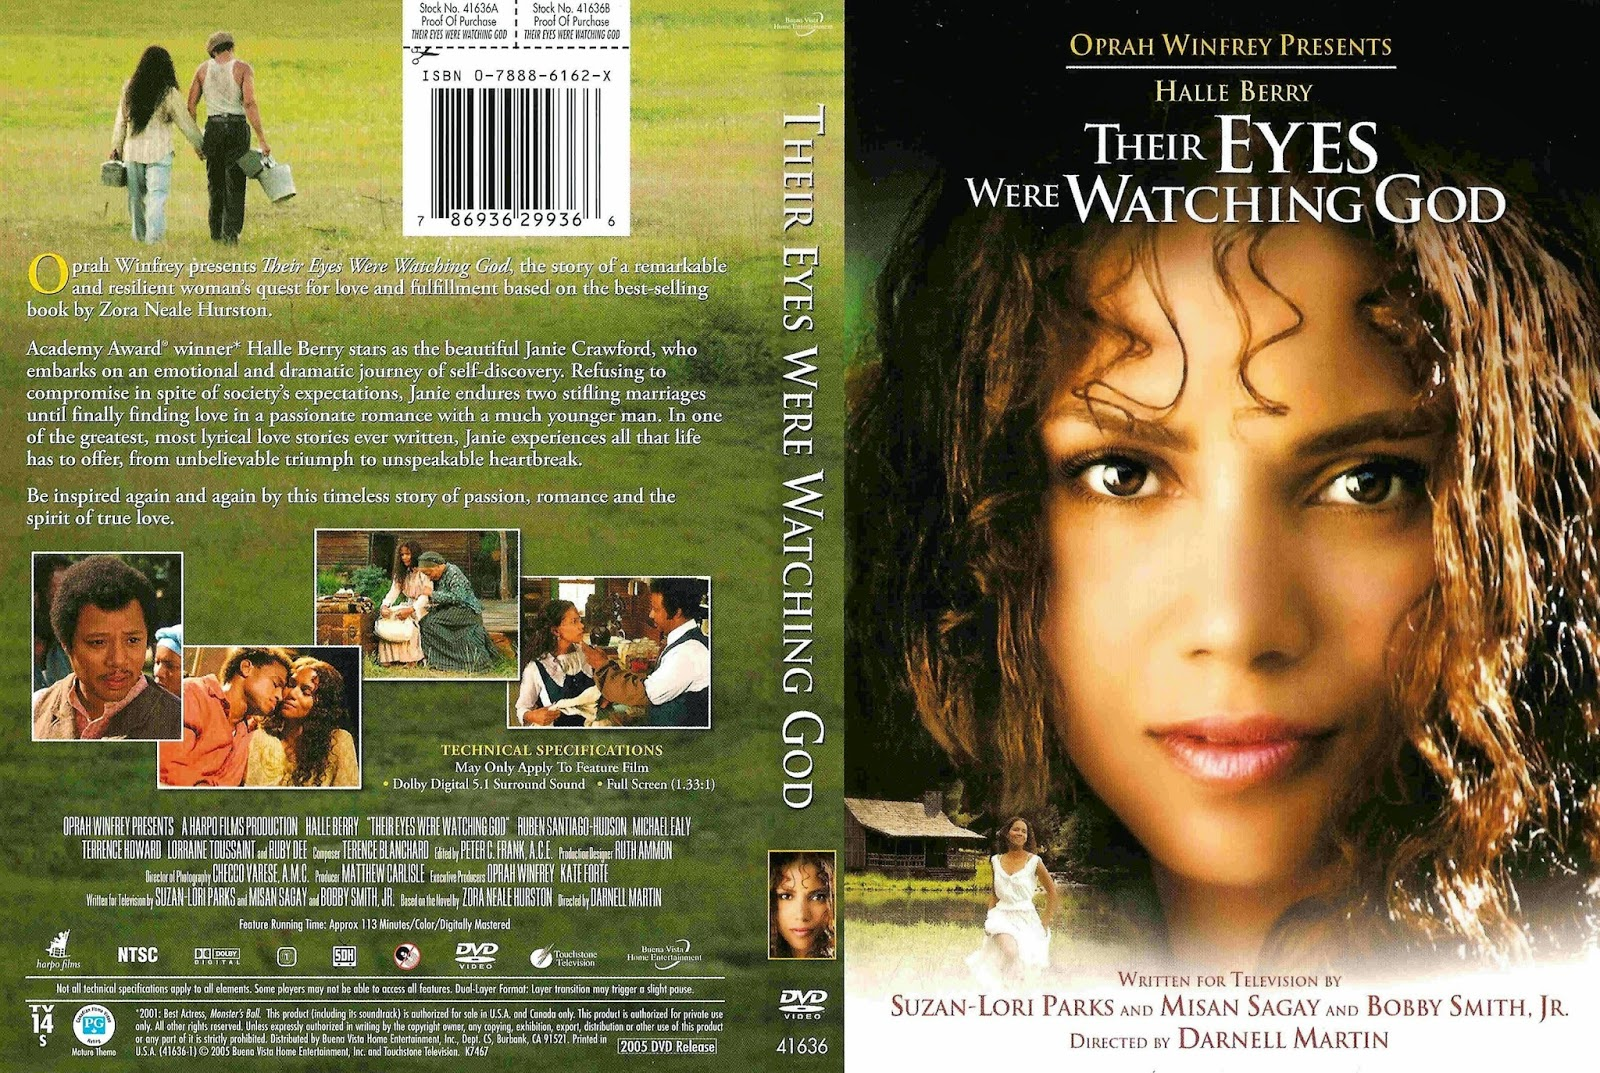 a comparison of their eyes were watching god and i am me my eyes toward god 77 bible verses about gods eyes the eyes of the lord are toward the righteous and his ears toward their cry the days that were formed for me.